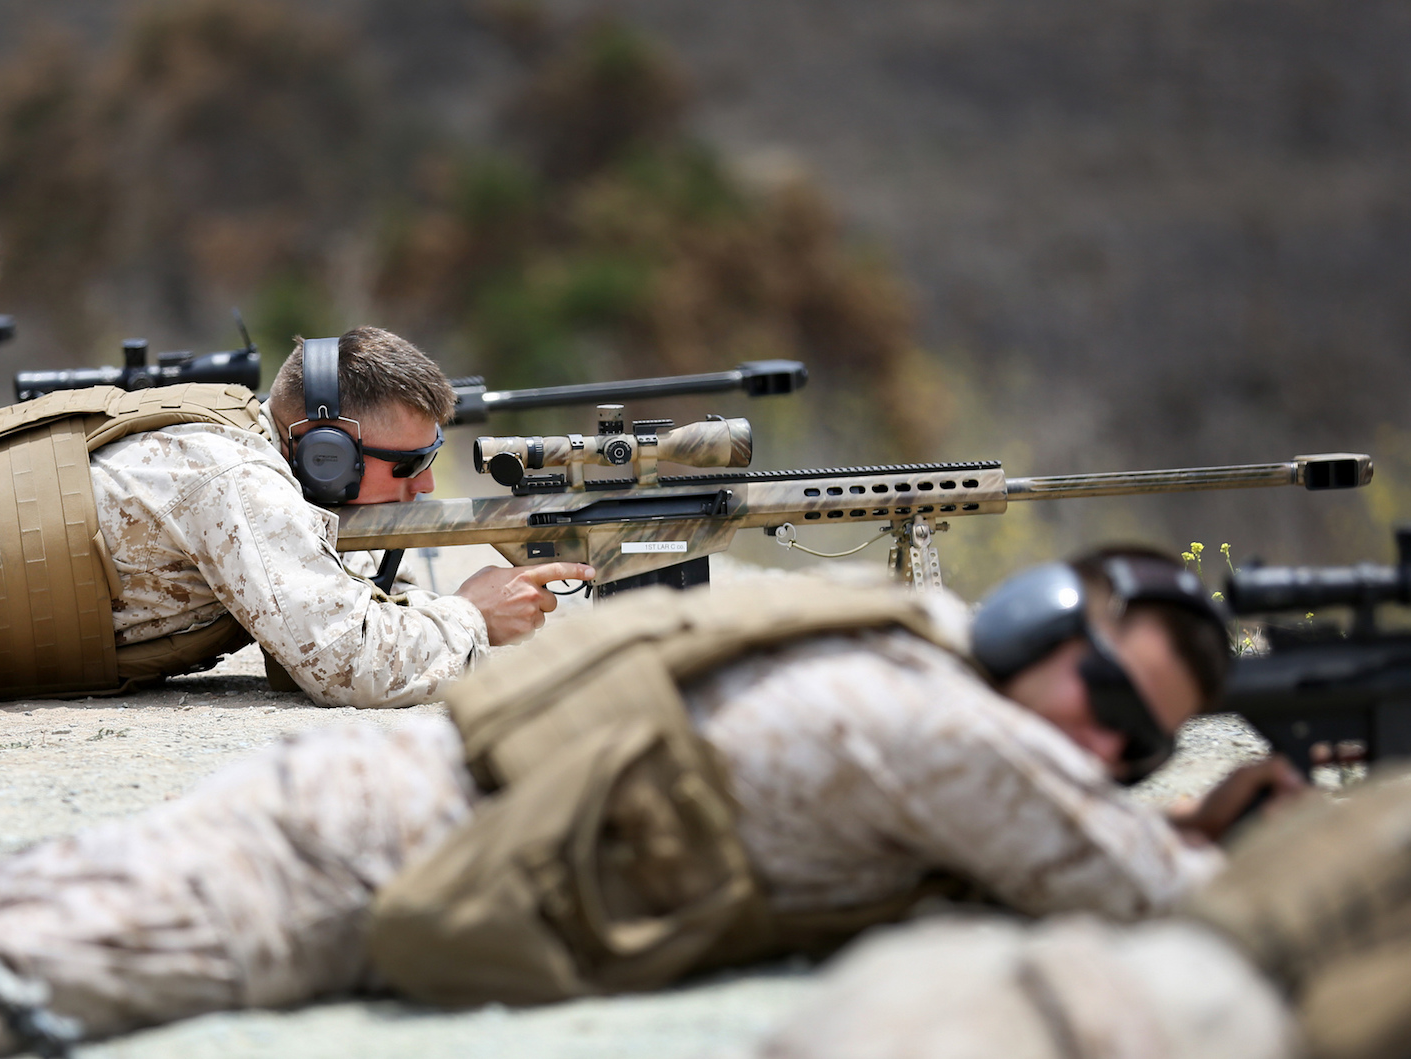 armys long serving sniper rifle - HD1411×1059